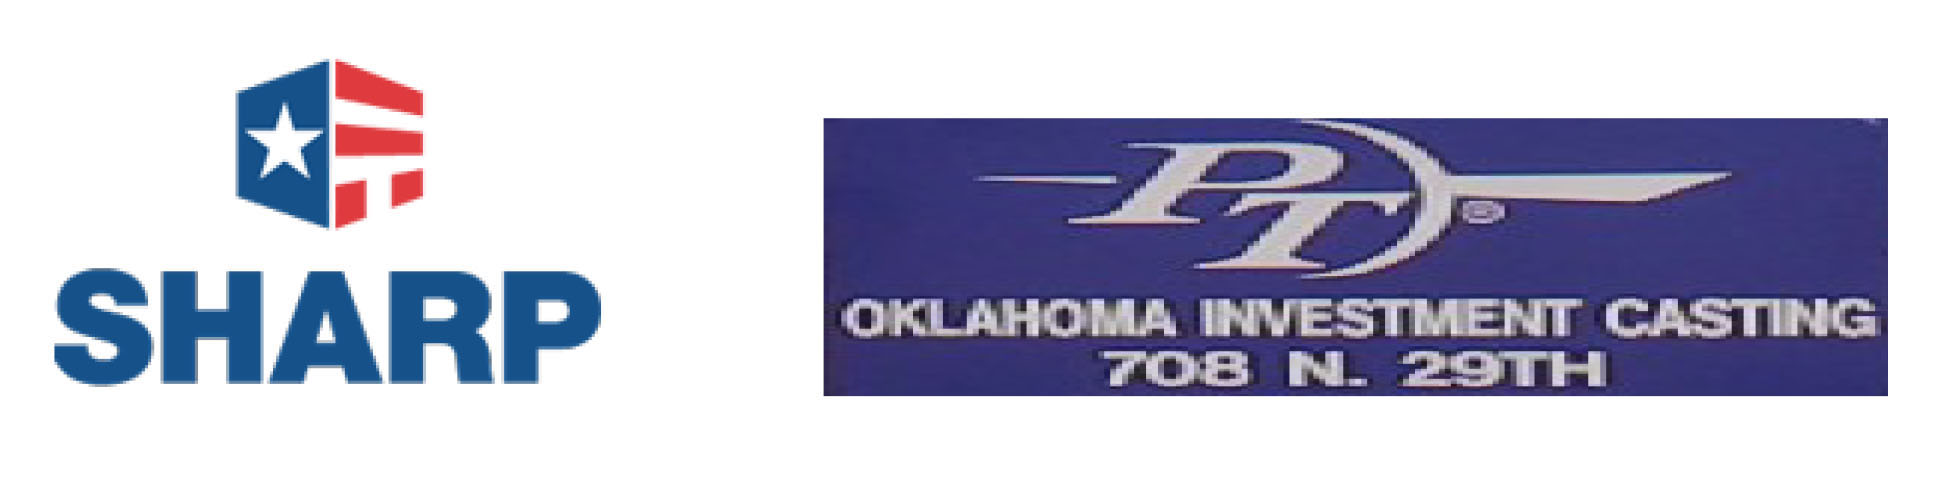 SHARP and PT Oklahoma Investment Casting logo